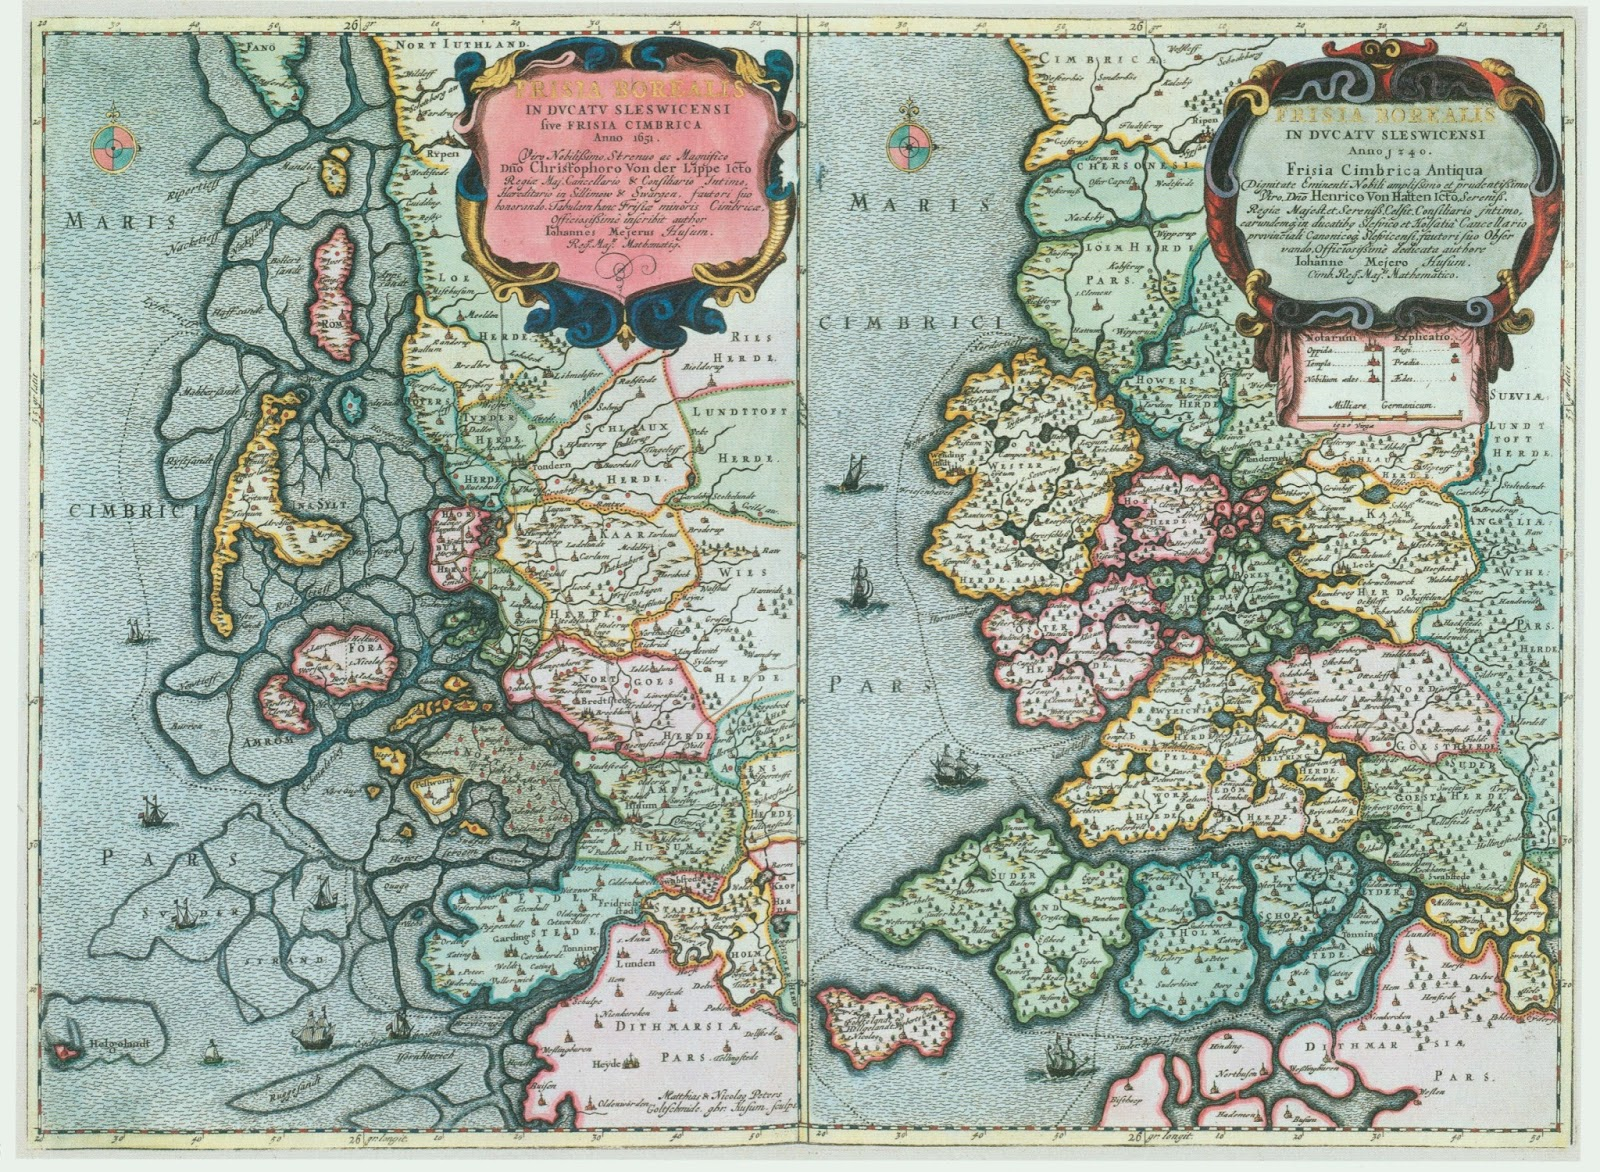 North Frisian coast (Netherlands) in 1651 an 1240, that shows how the coast line had changed